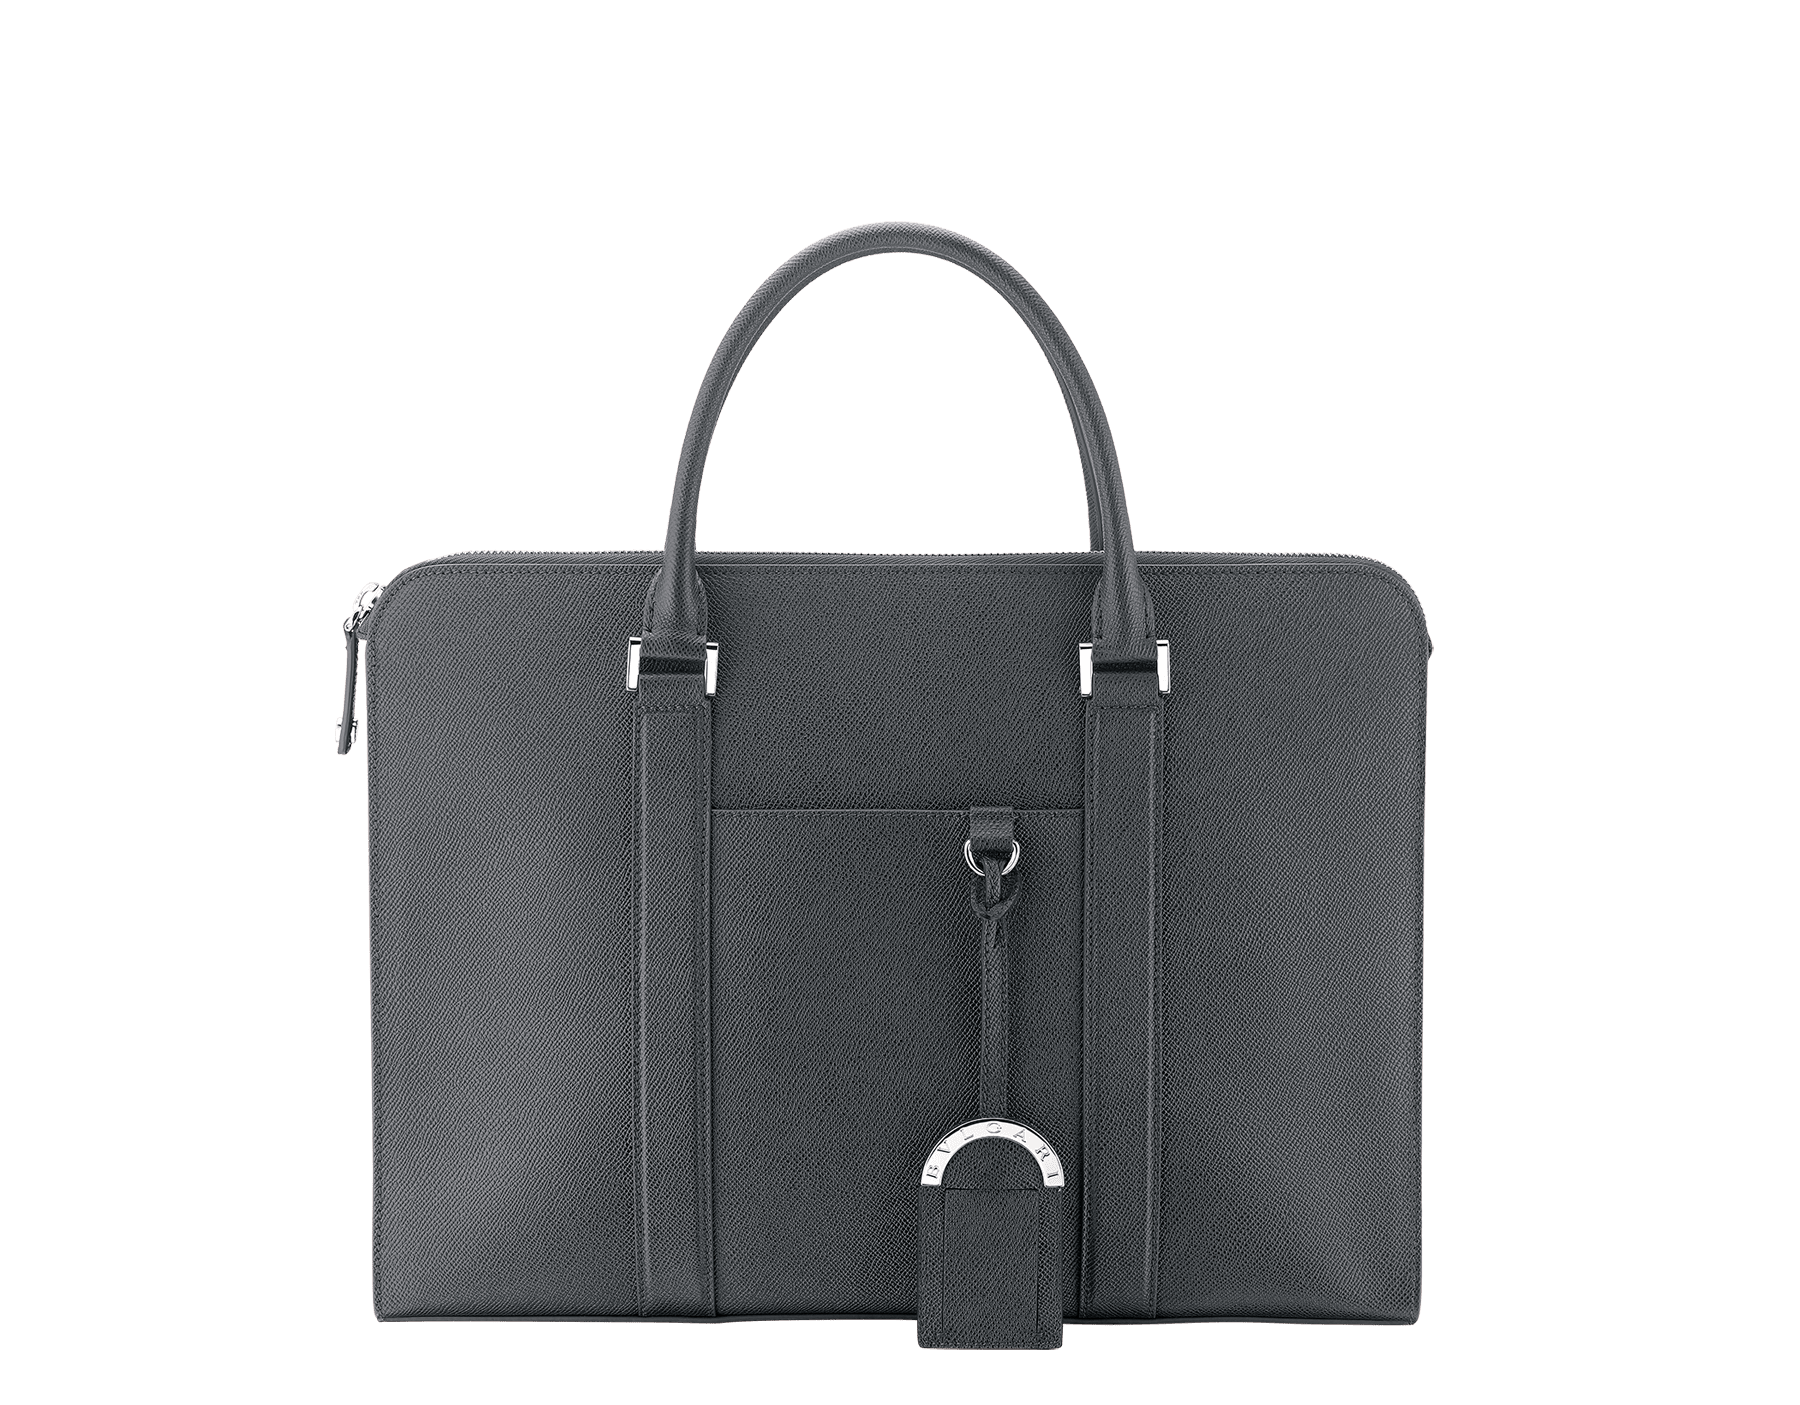 """BVLGARI BVLGARI"" zipped briefcase in mimetic jade grain calf leather and roman garnet nappa leather lining, with brass palladium plated hardware. BBM-001-0908S image 1"